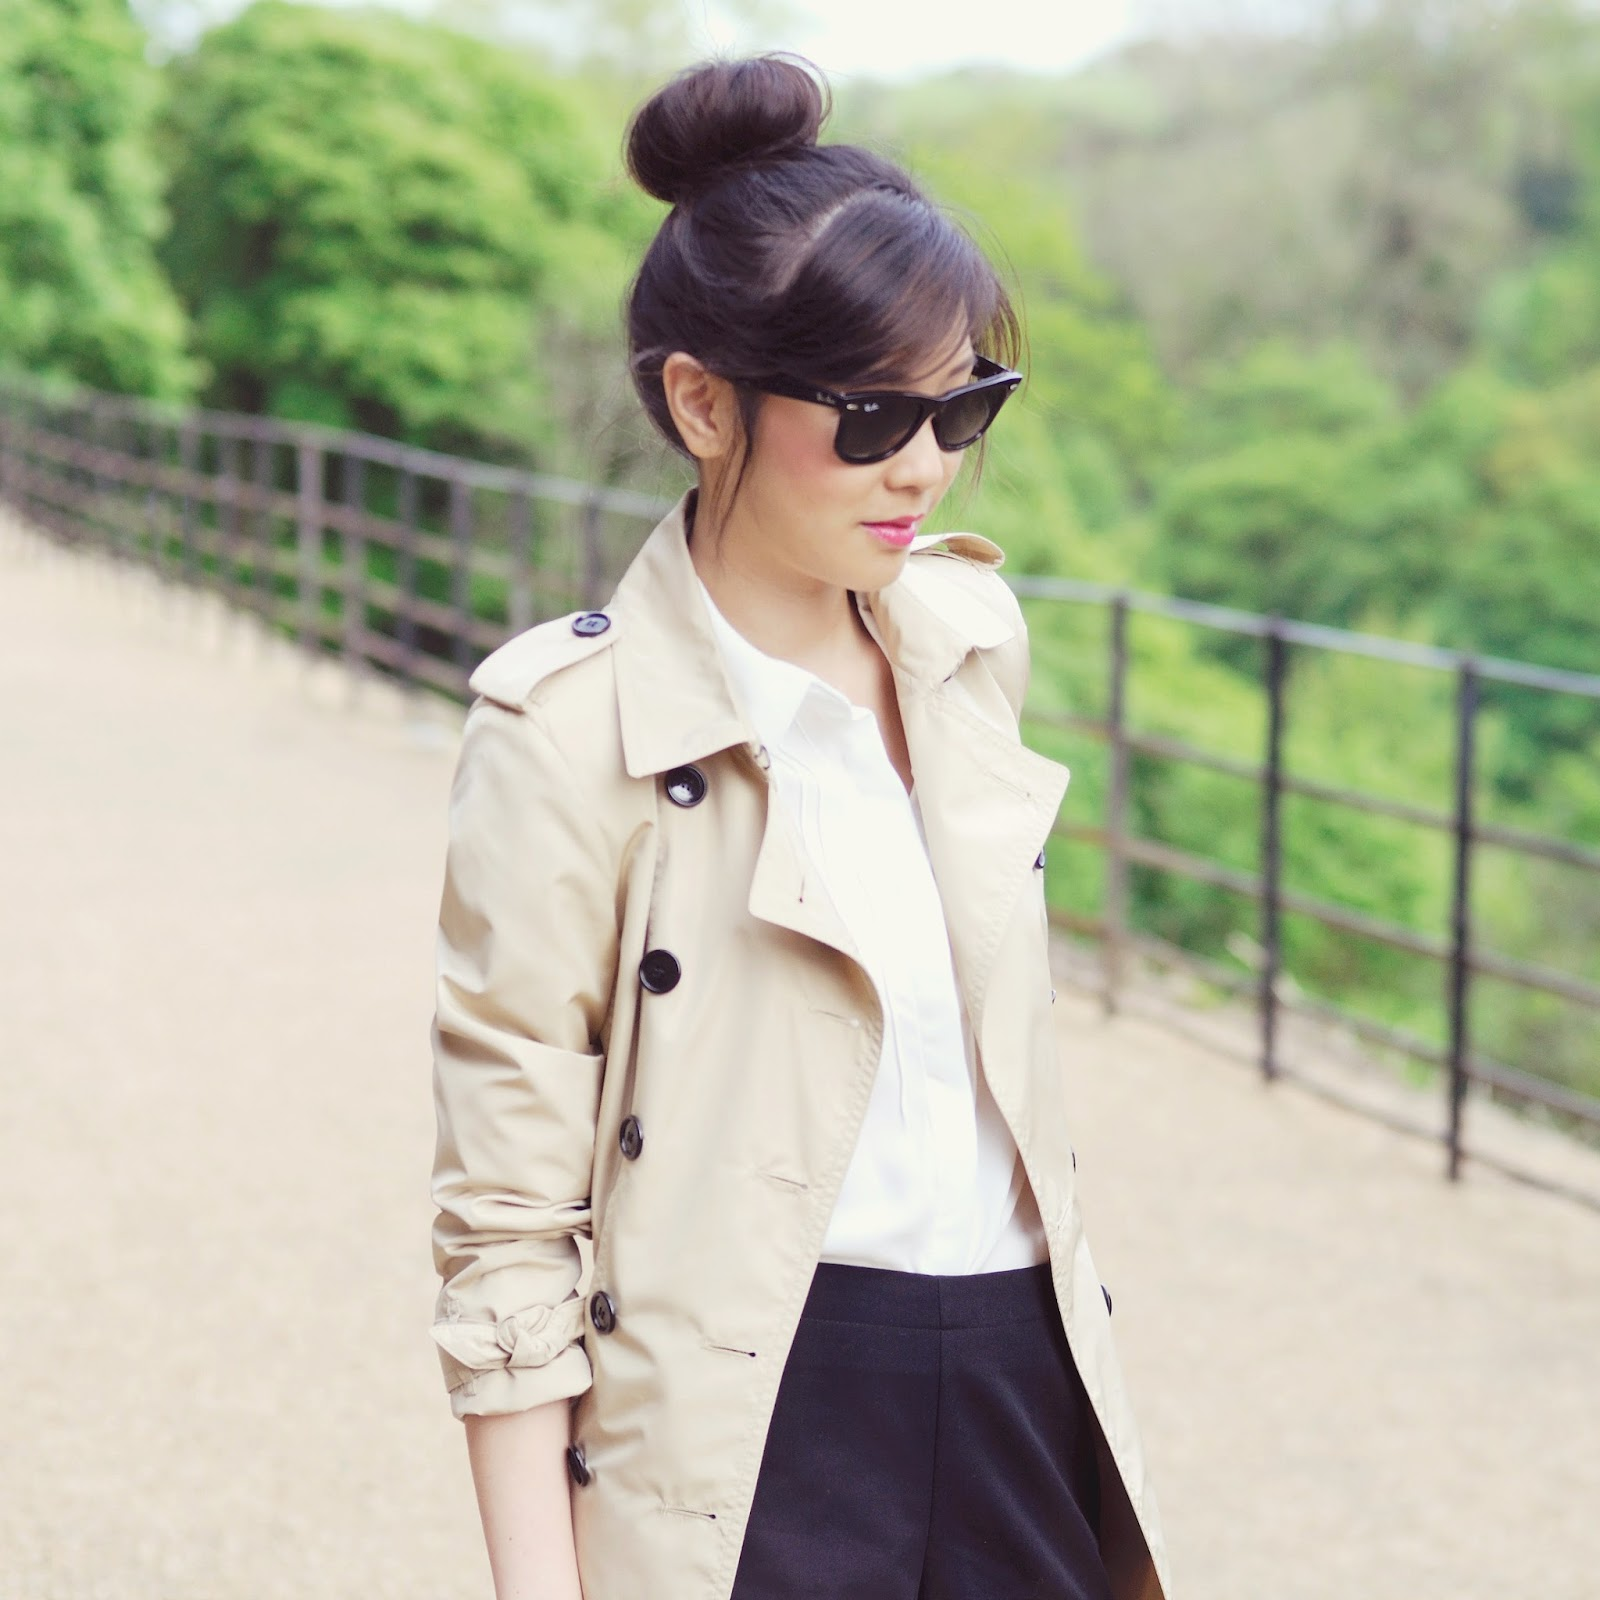 Classic and chic style